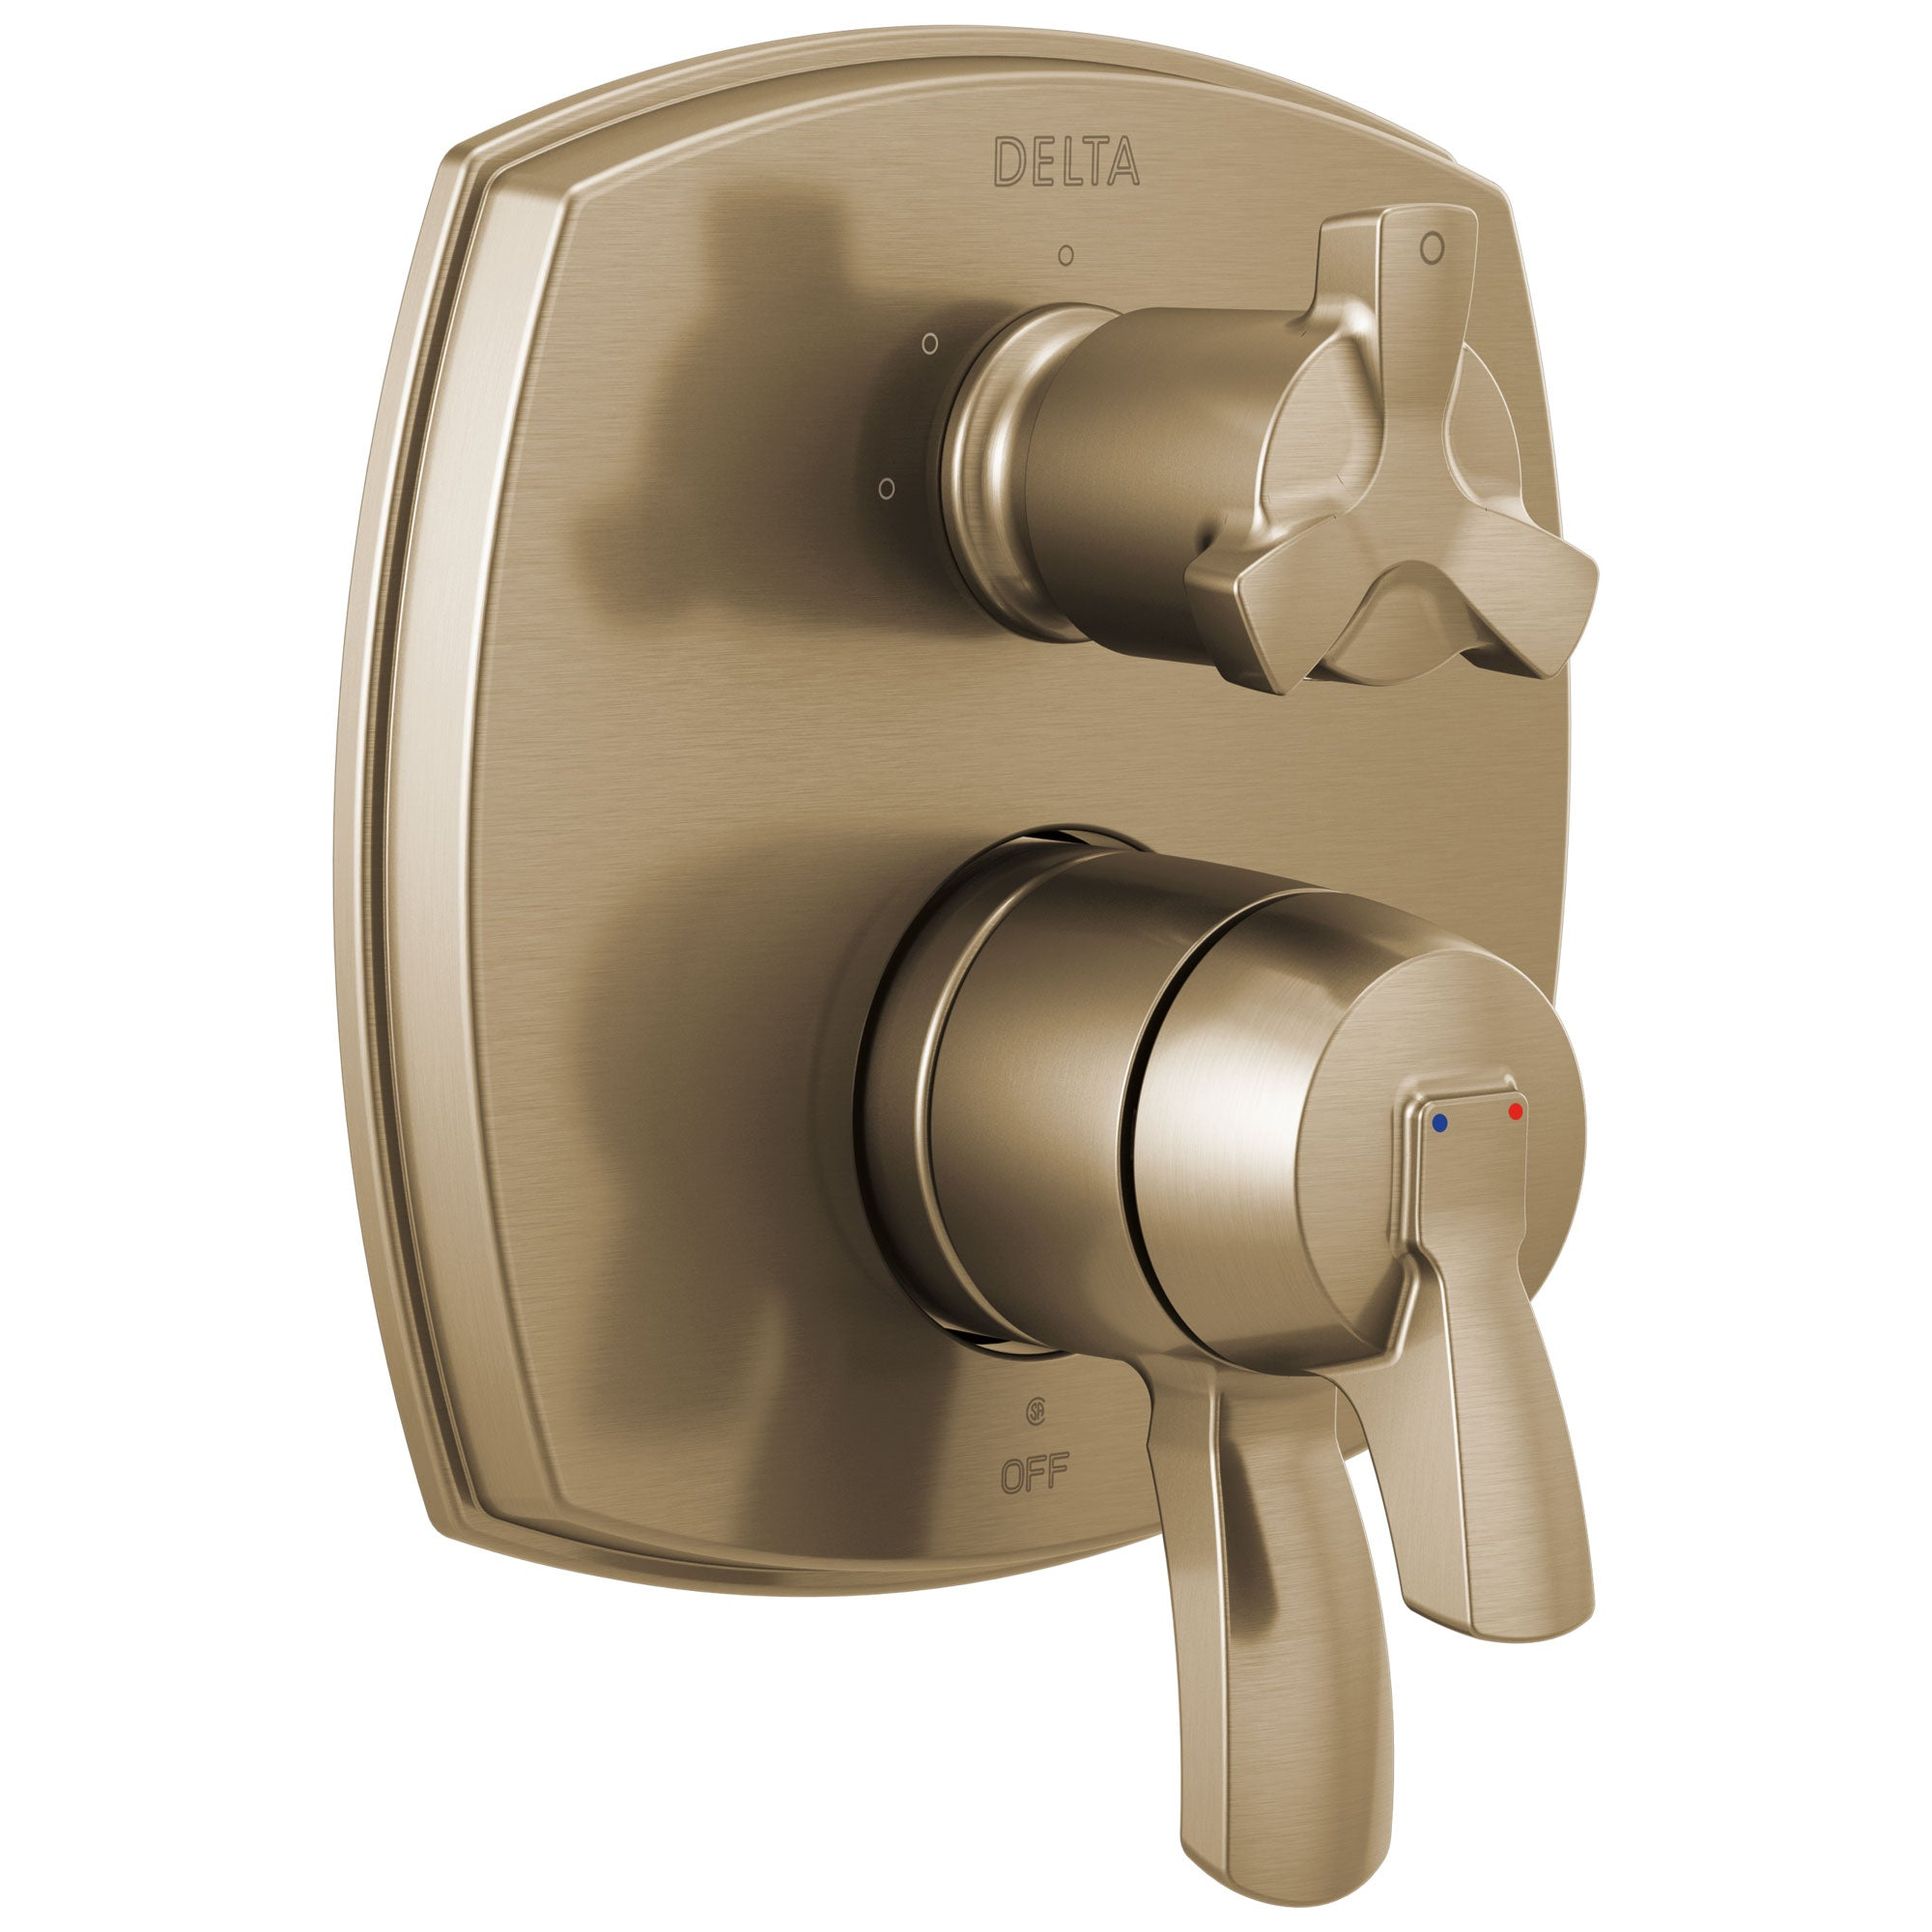 Delta Stryke Champagne Bronze Finish 17 Series Integrated 3-Function Cross Handle Diverter Shower System Control Includes Valve and Handles D3147V